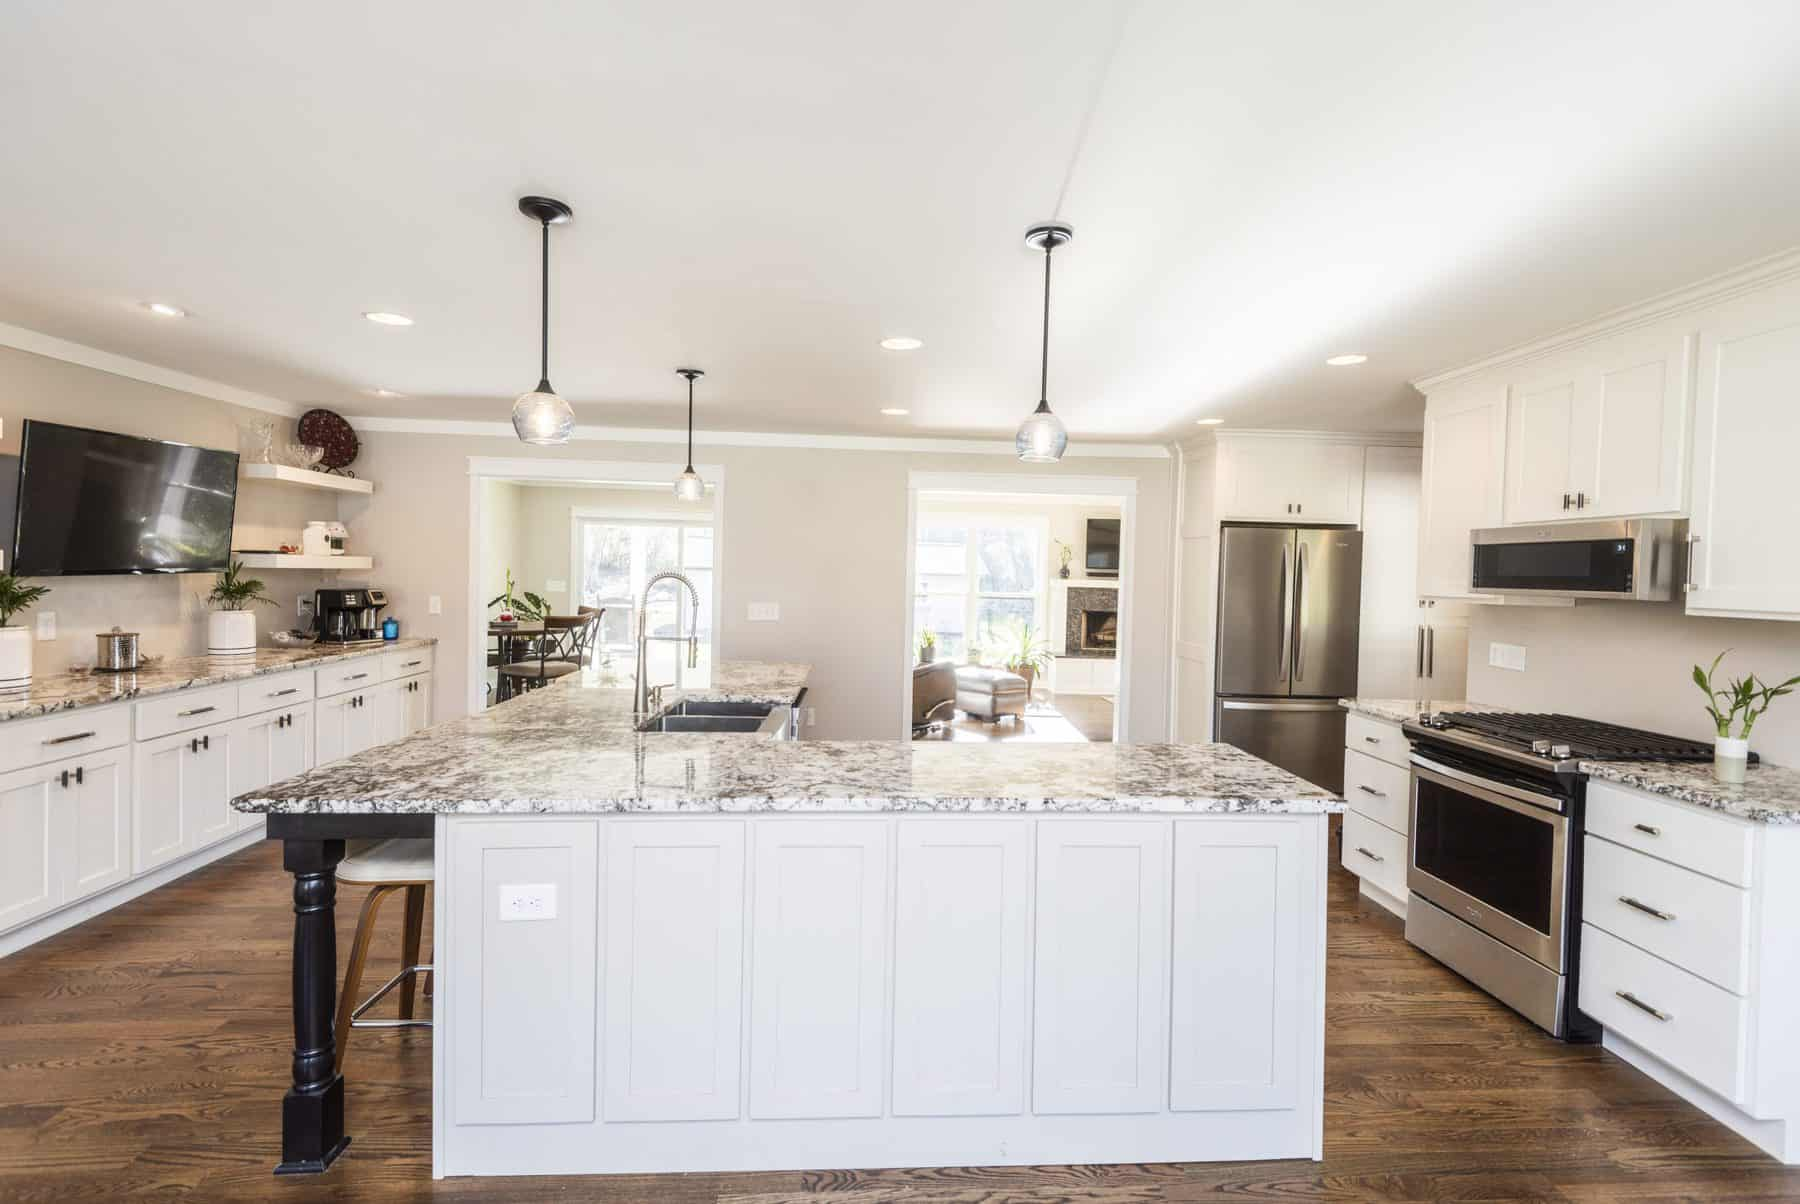 gourmet kitchen at remodel and house addition in cartersville